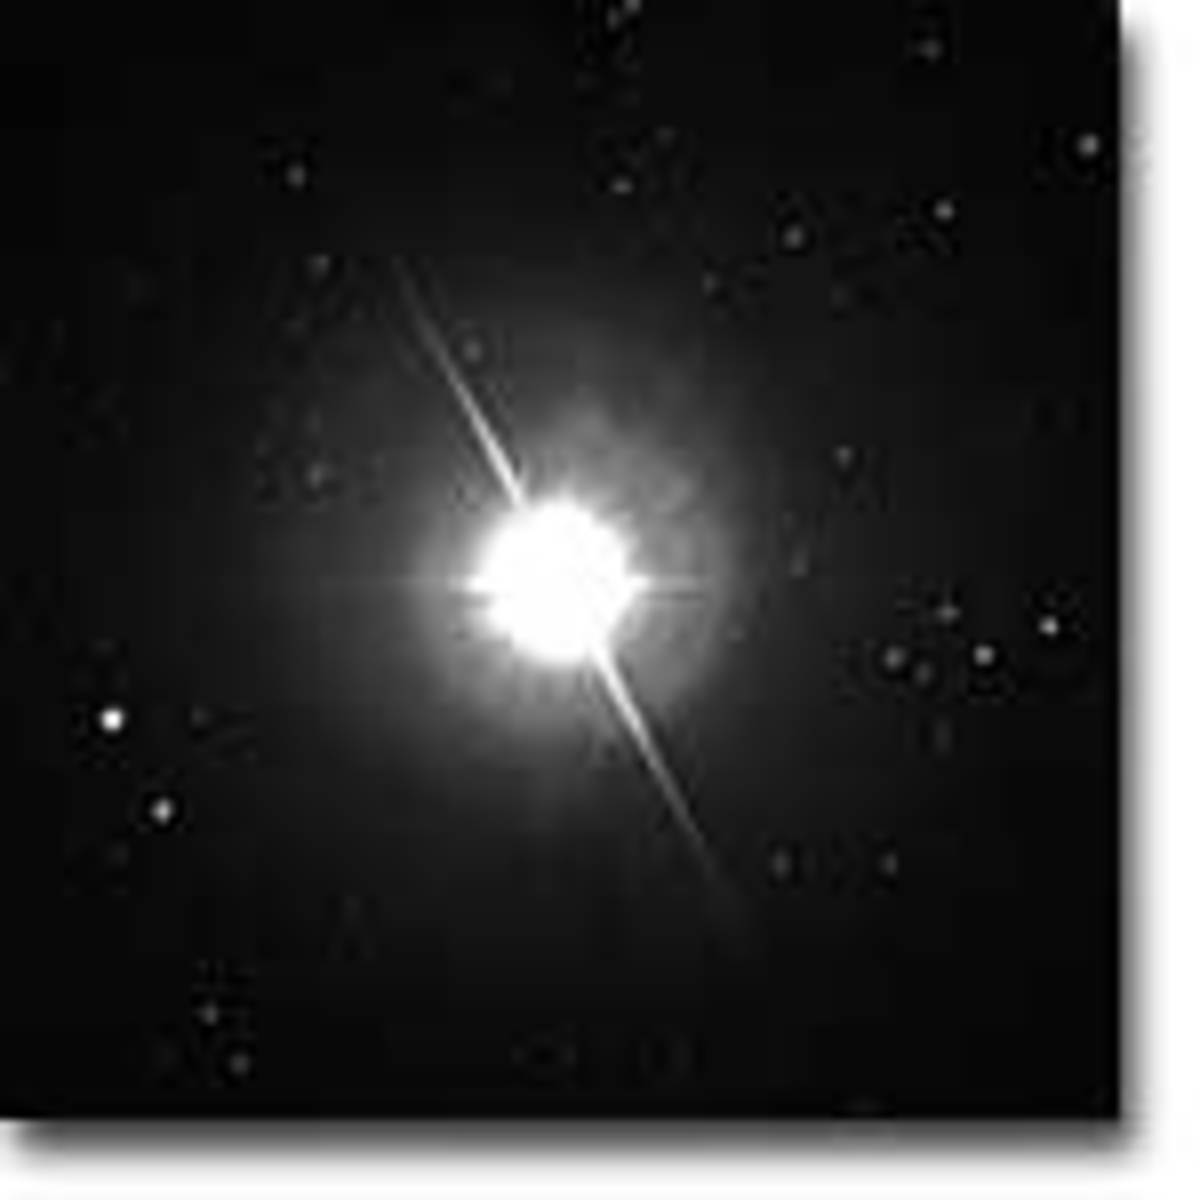 The star Altair as seen from the Wilson Observatory.